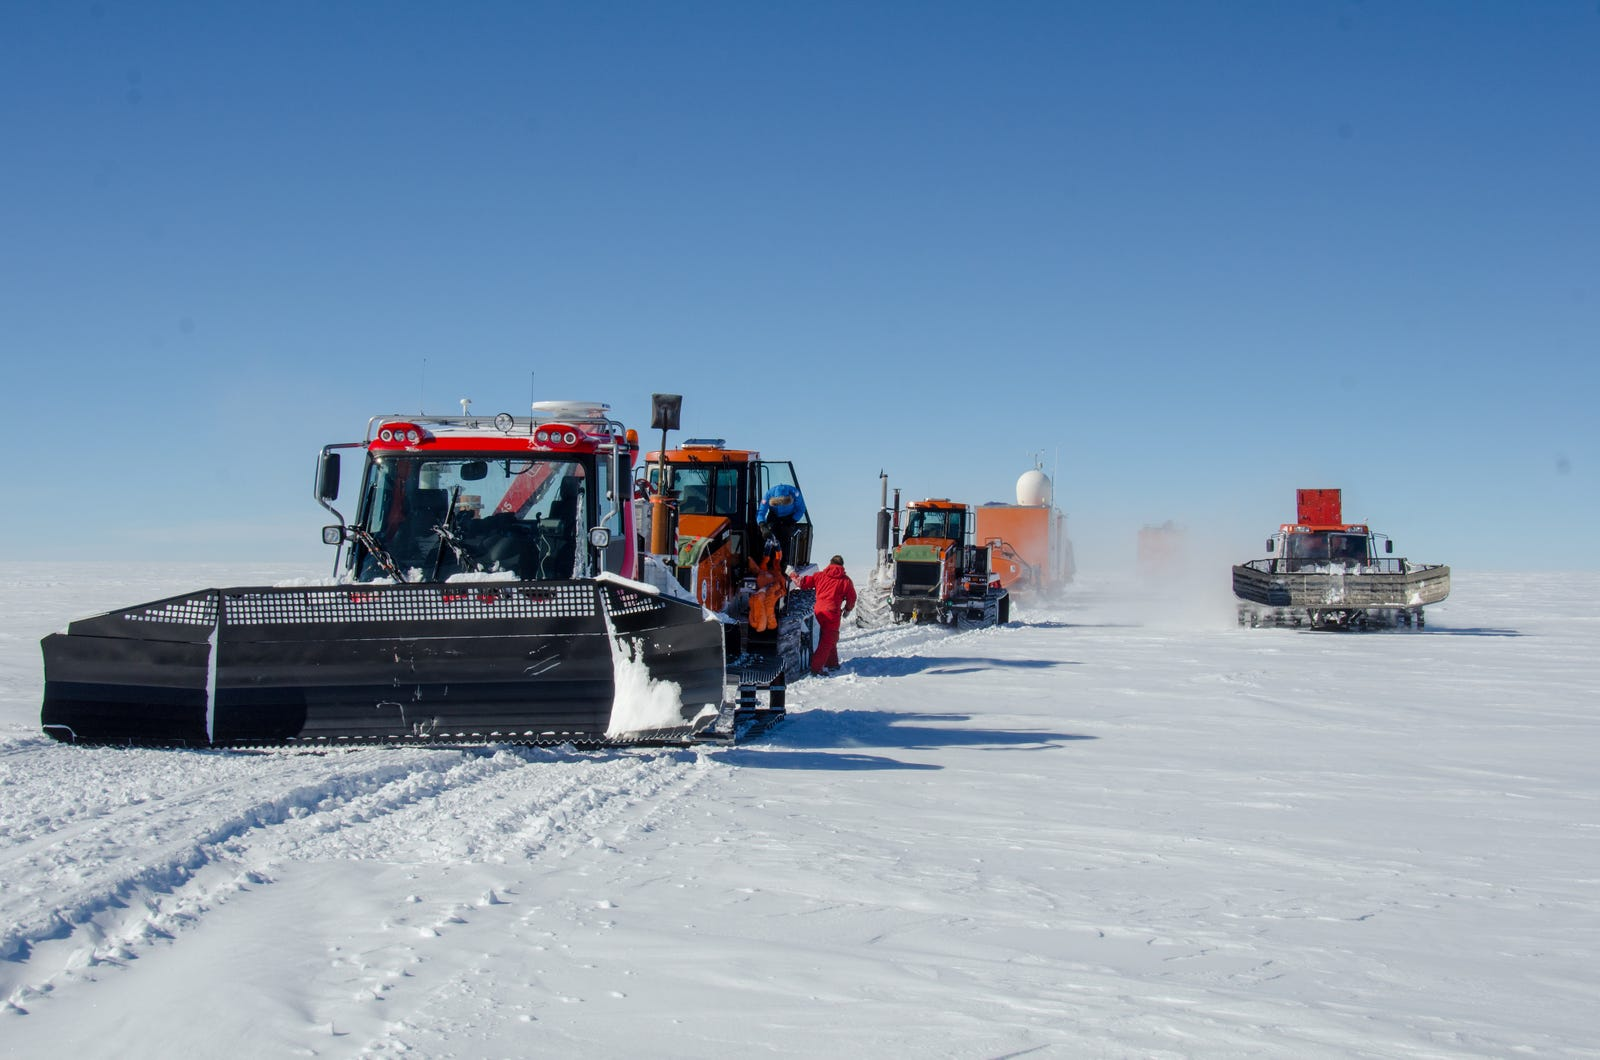 Scientists Are Gearing Up To Drill Some Of The Oldest Ice On The Planet